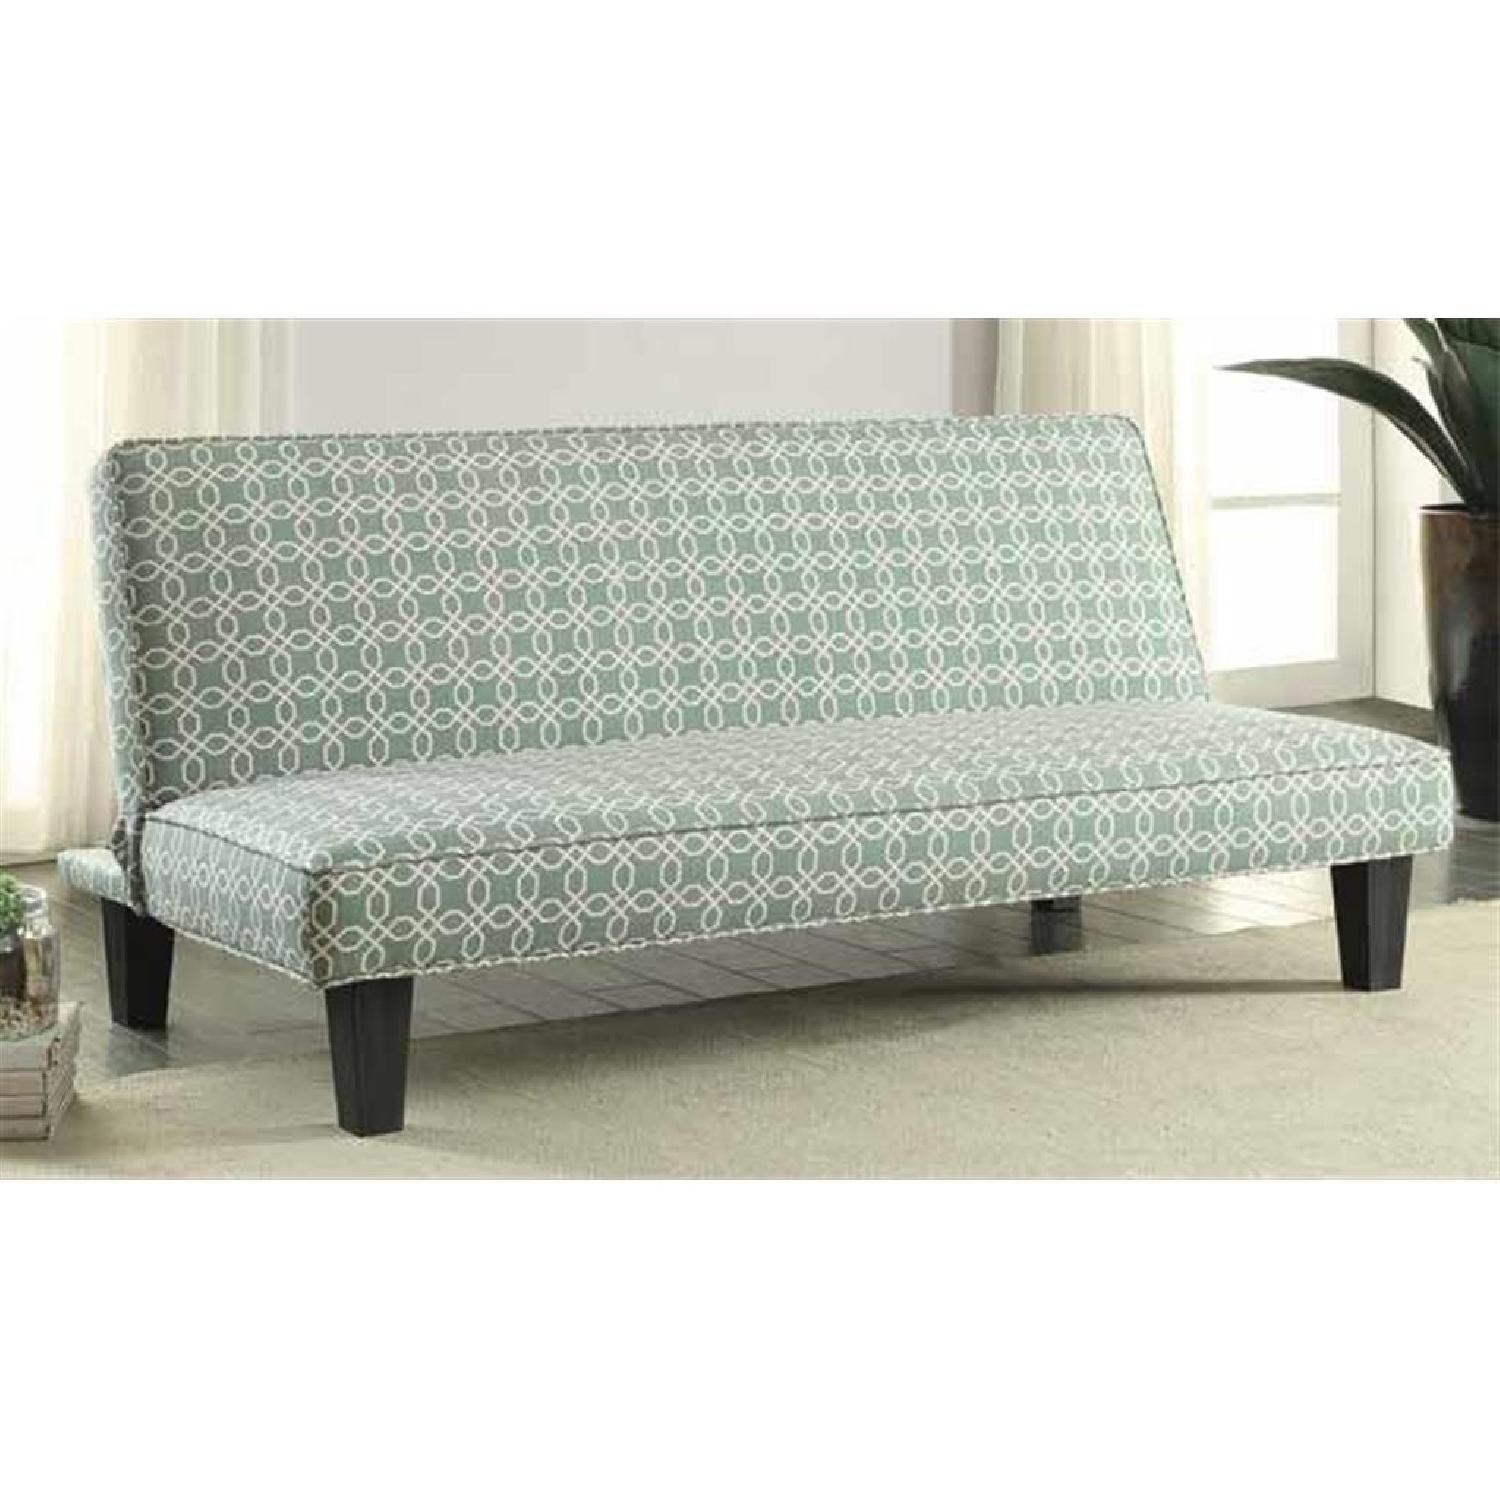 Convertible Sofabed in Teal Fabric - image-1